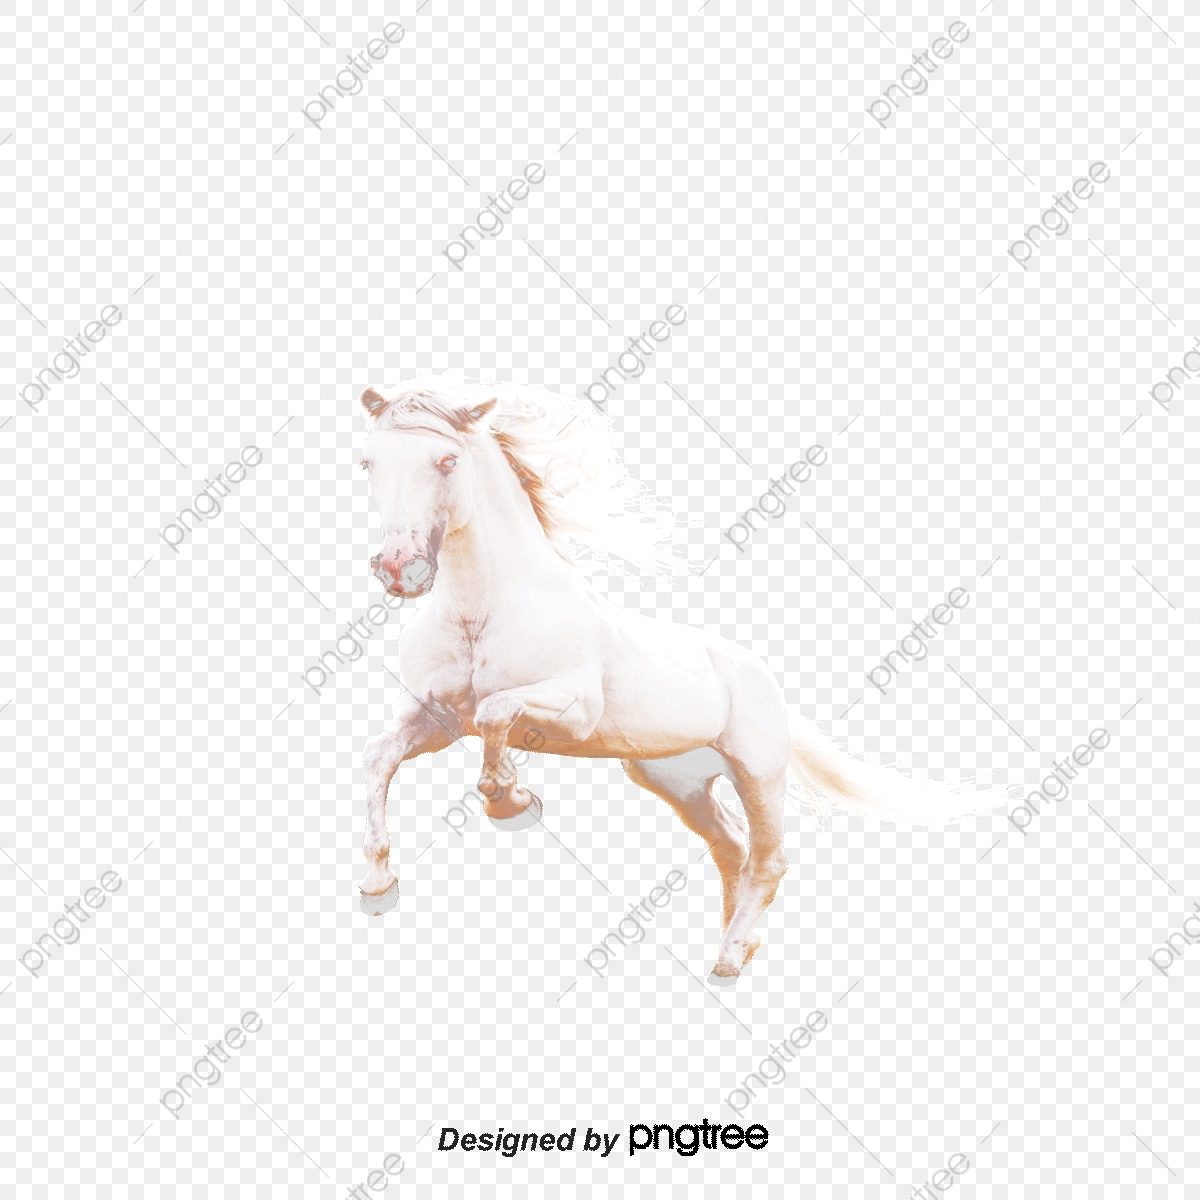 Beautiful White Horse Horse Clipart Whitehorse Horses Png Transparent Clipart Image And Psd File For Free Download